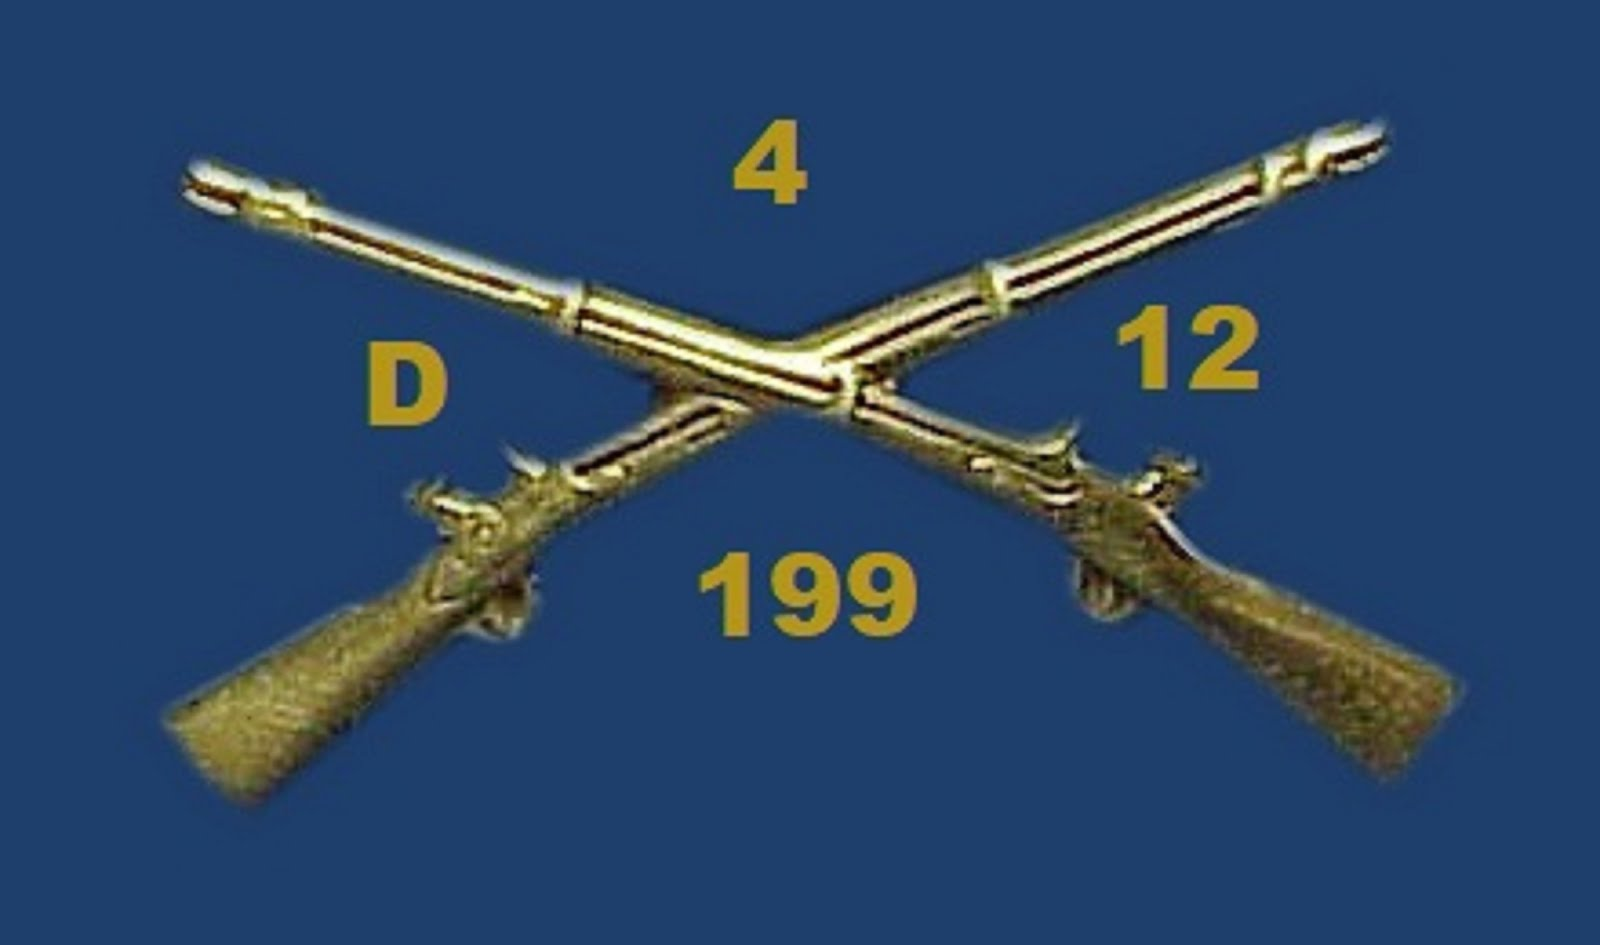 D-4-12-199 INFANTRY CROSSED RIFLES